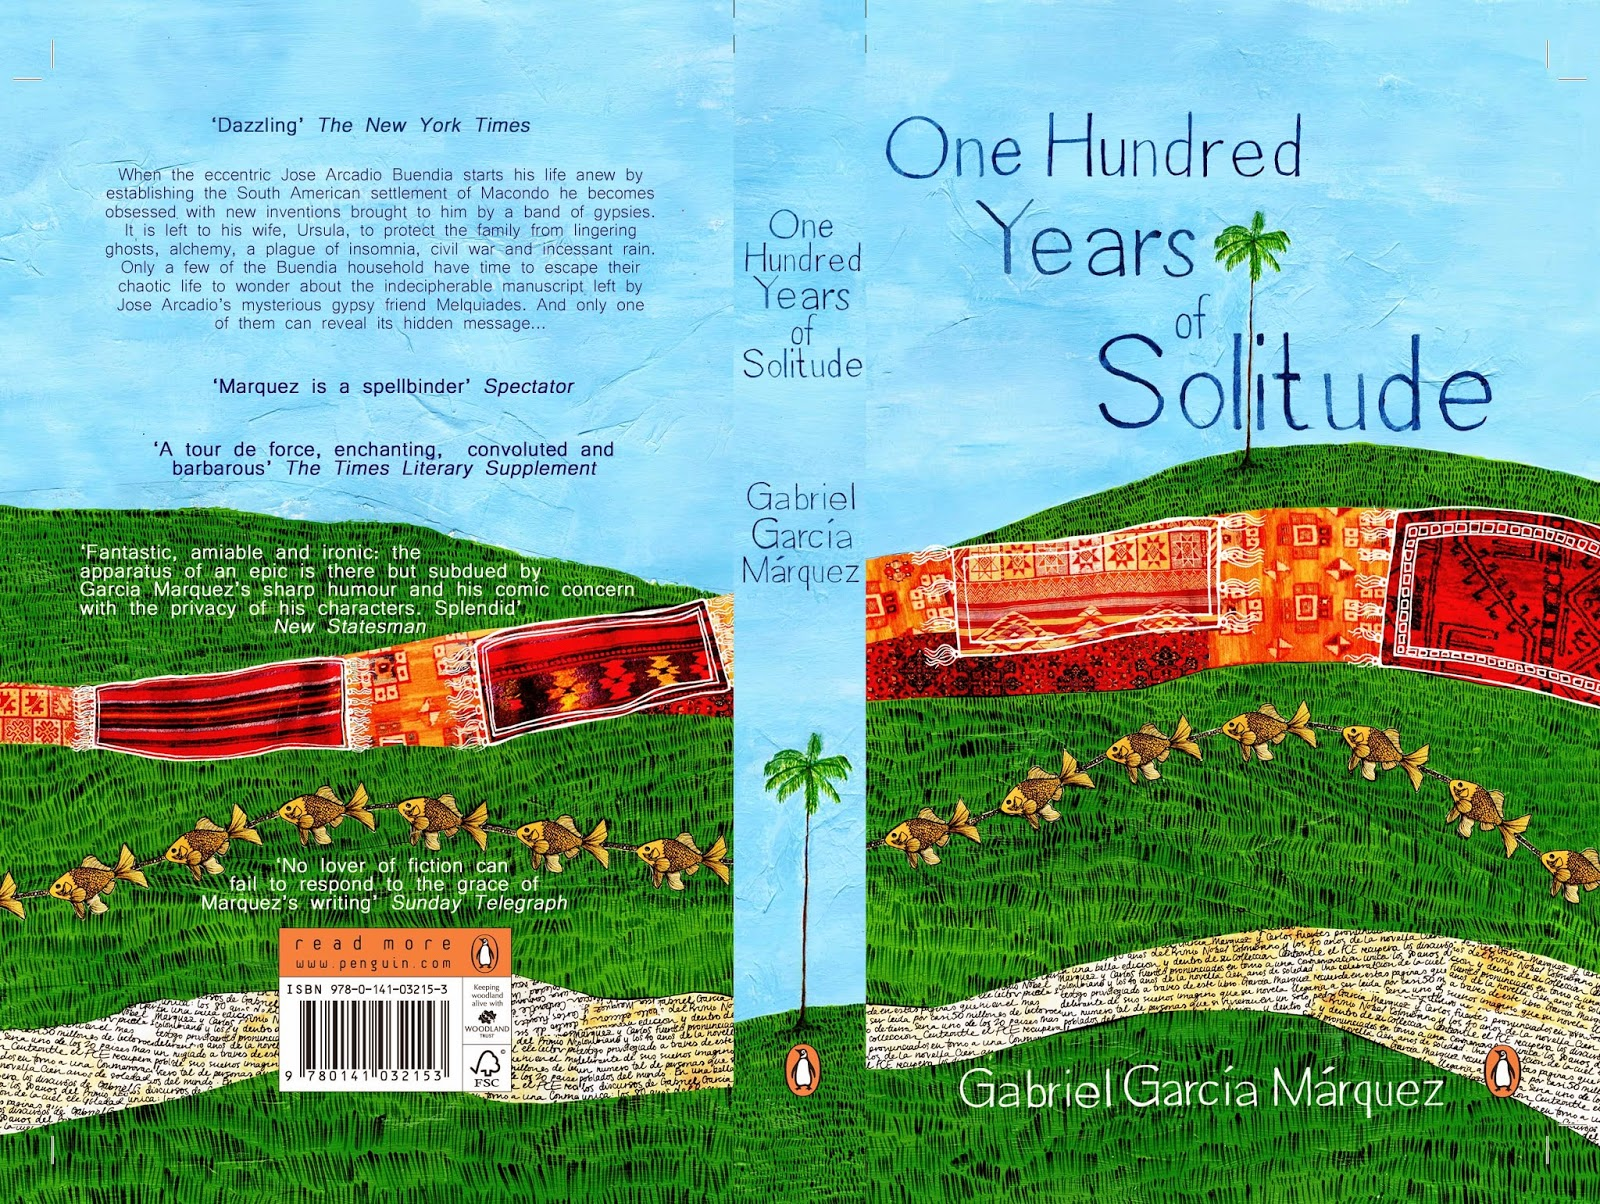 motif in one hundred years of García márquez started as a journalist, and wrote many acclaimed non-fiction works and short stories, but is best known for his novels, such as one hundred years of solitude (1967), the autumn of the patriarch (1975), and love in the time of cholera (1985.